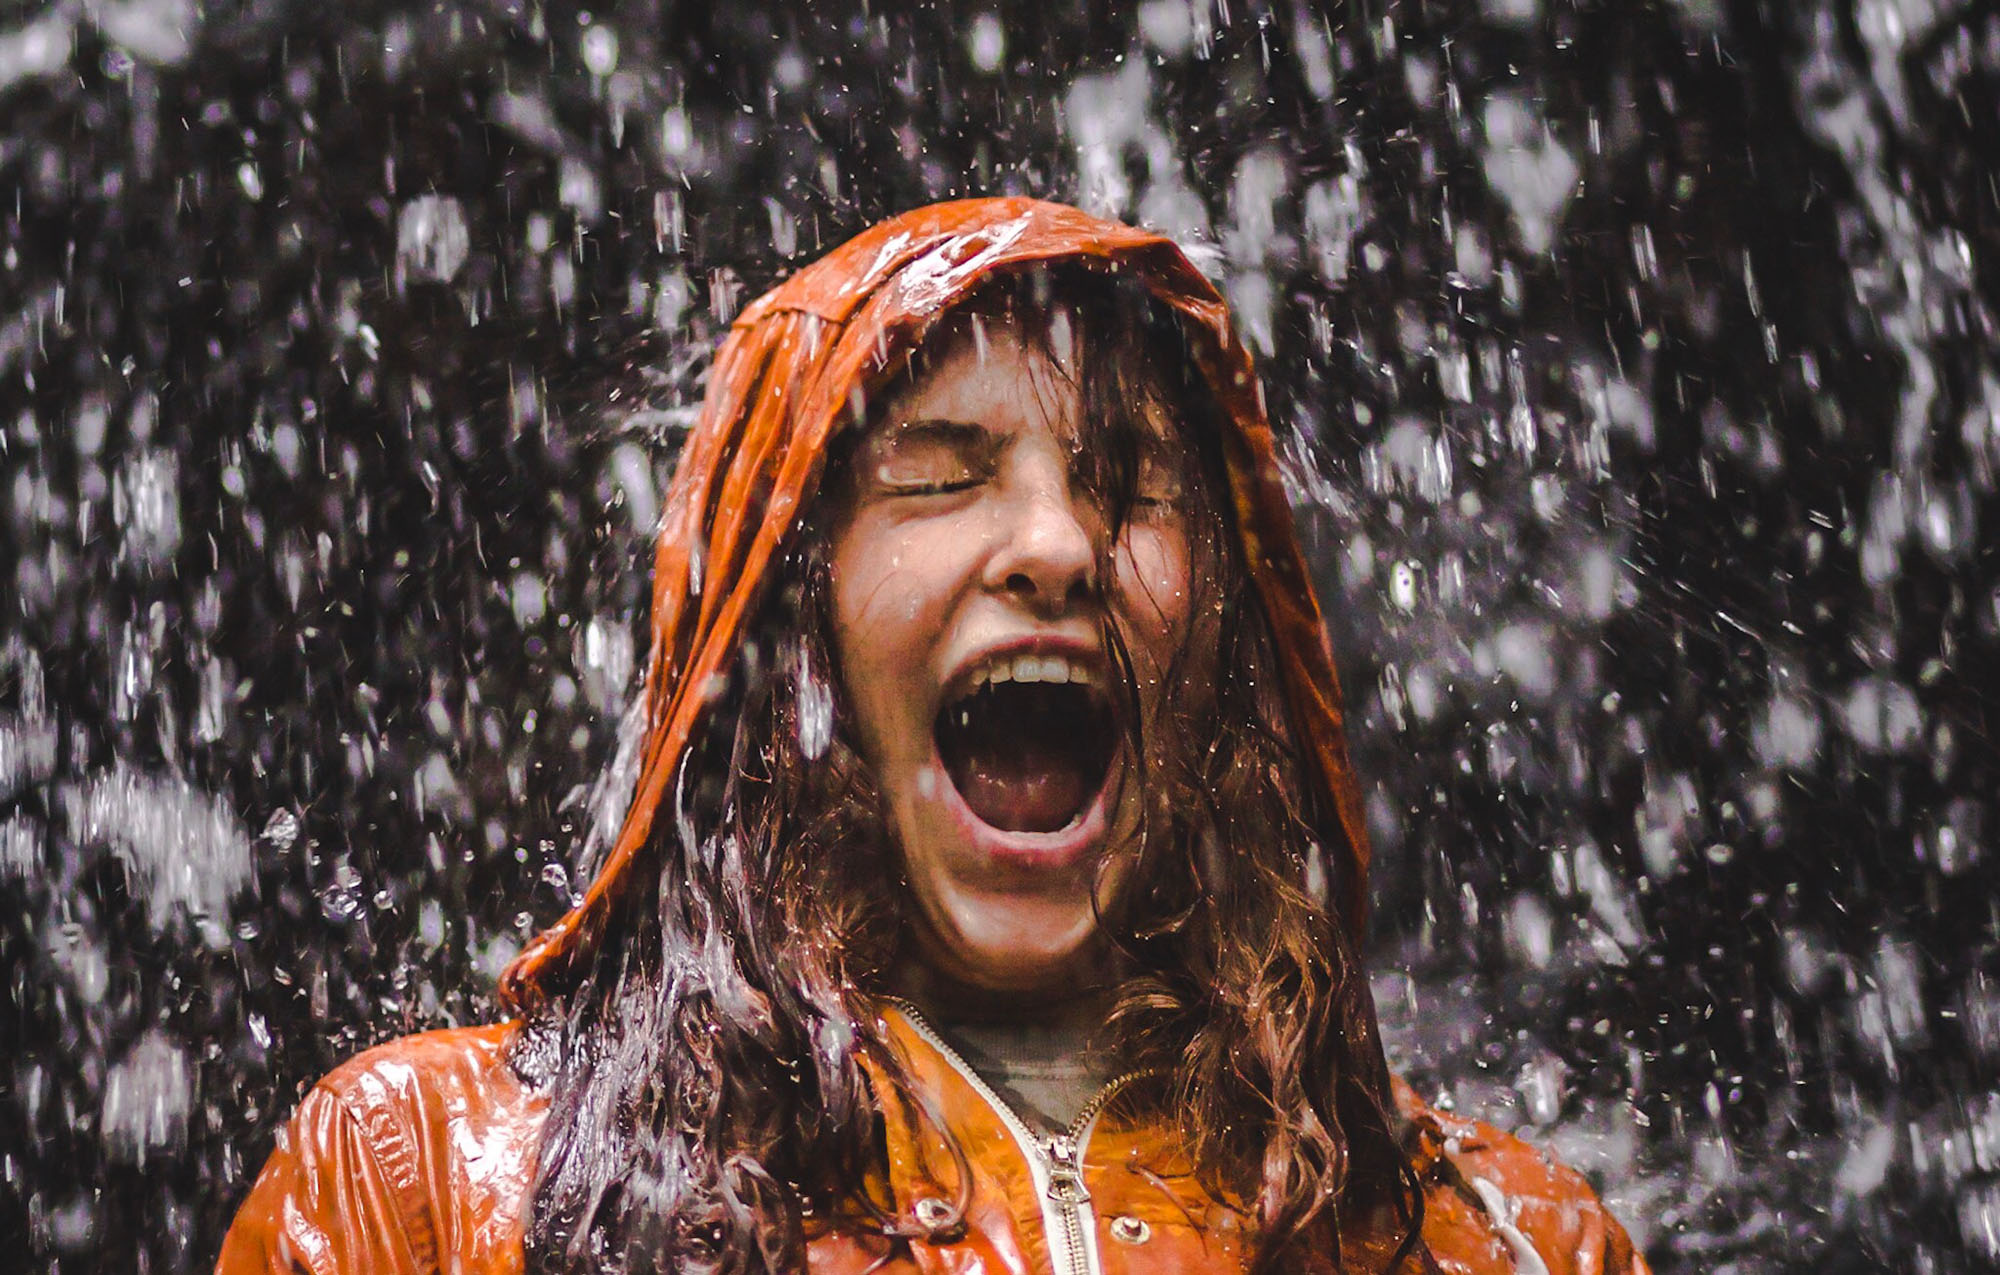 Cold Shower: How Complaining Made My Life Miserable (and How I Stopped)